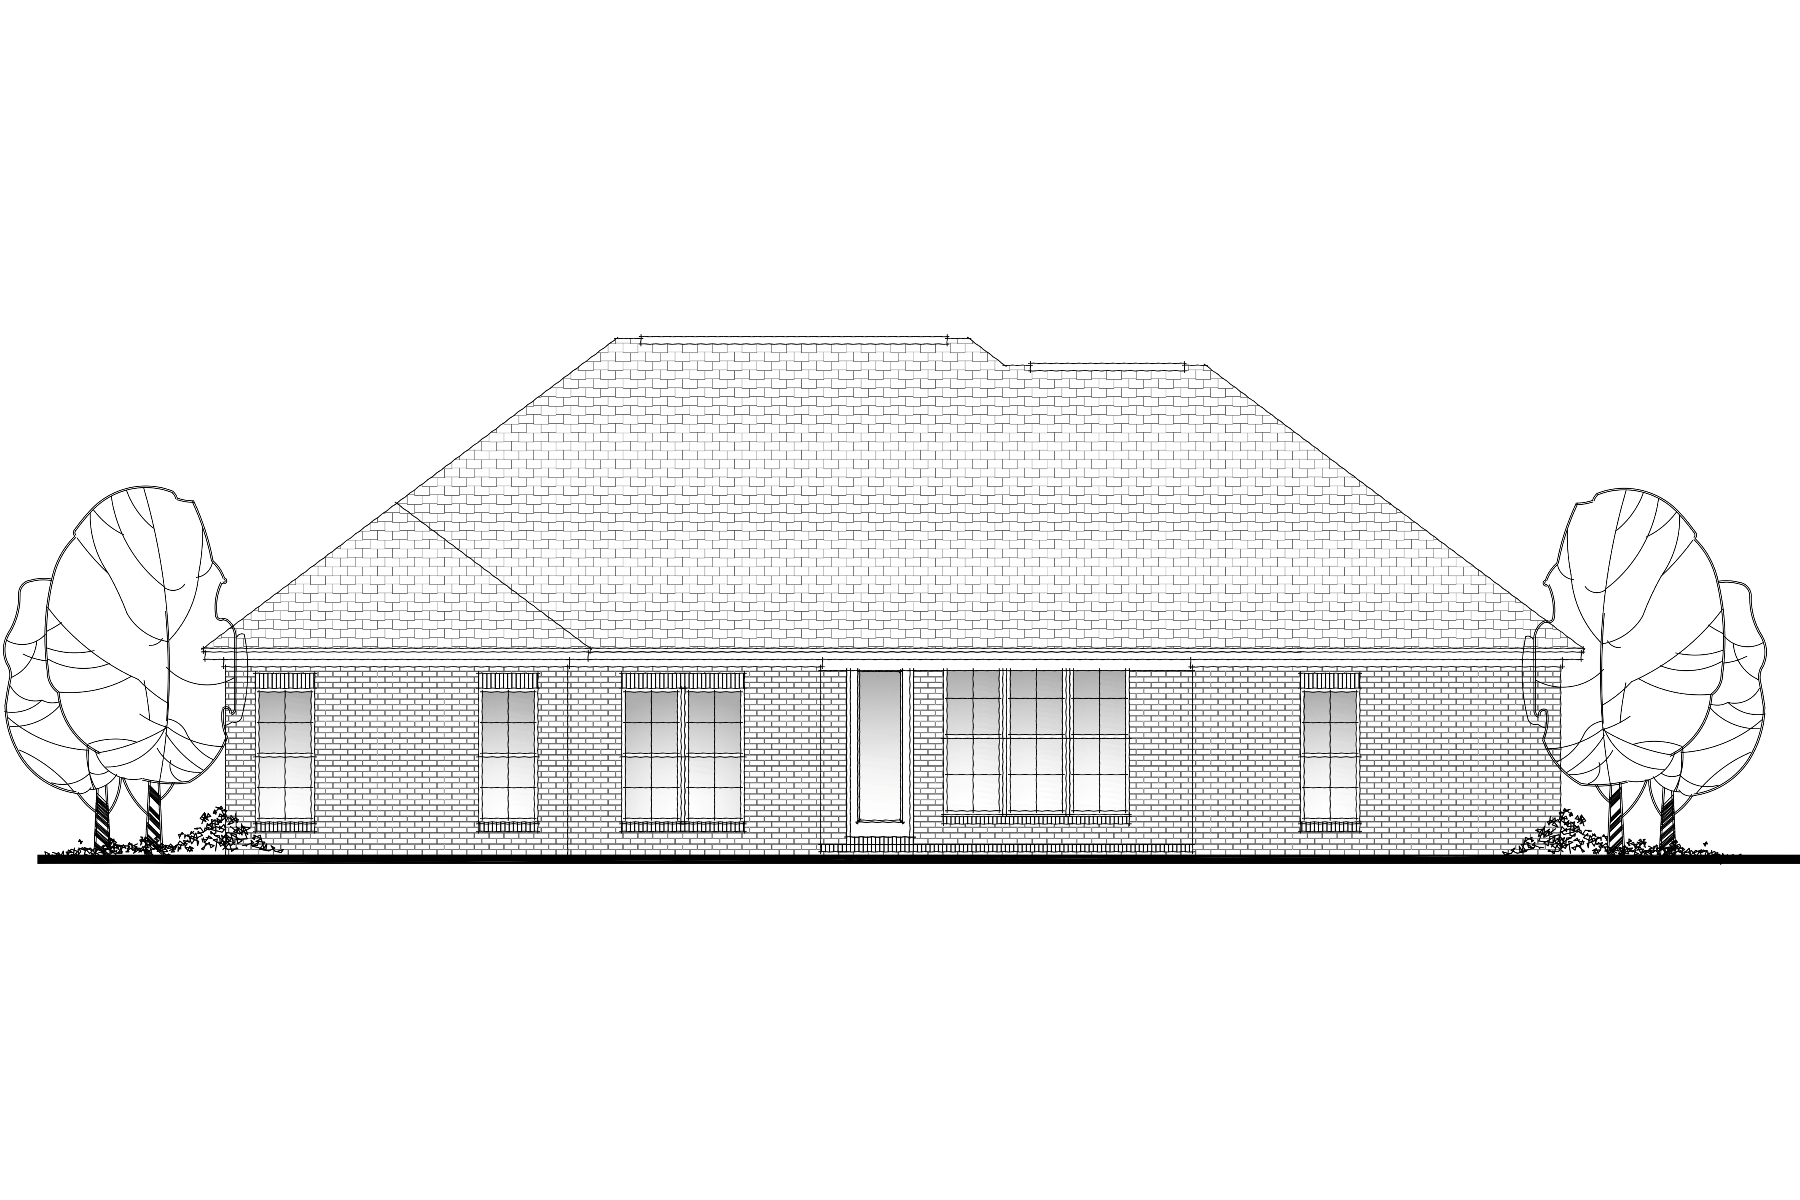 28 house plans over 10000 square 10000 square foot for 12000 sq ft house plans